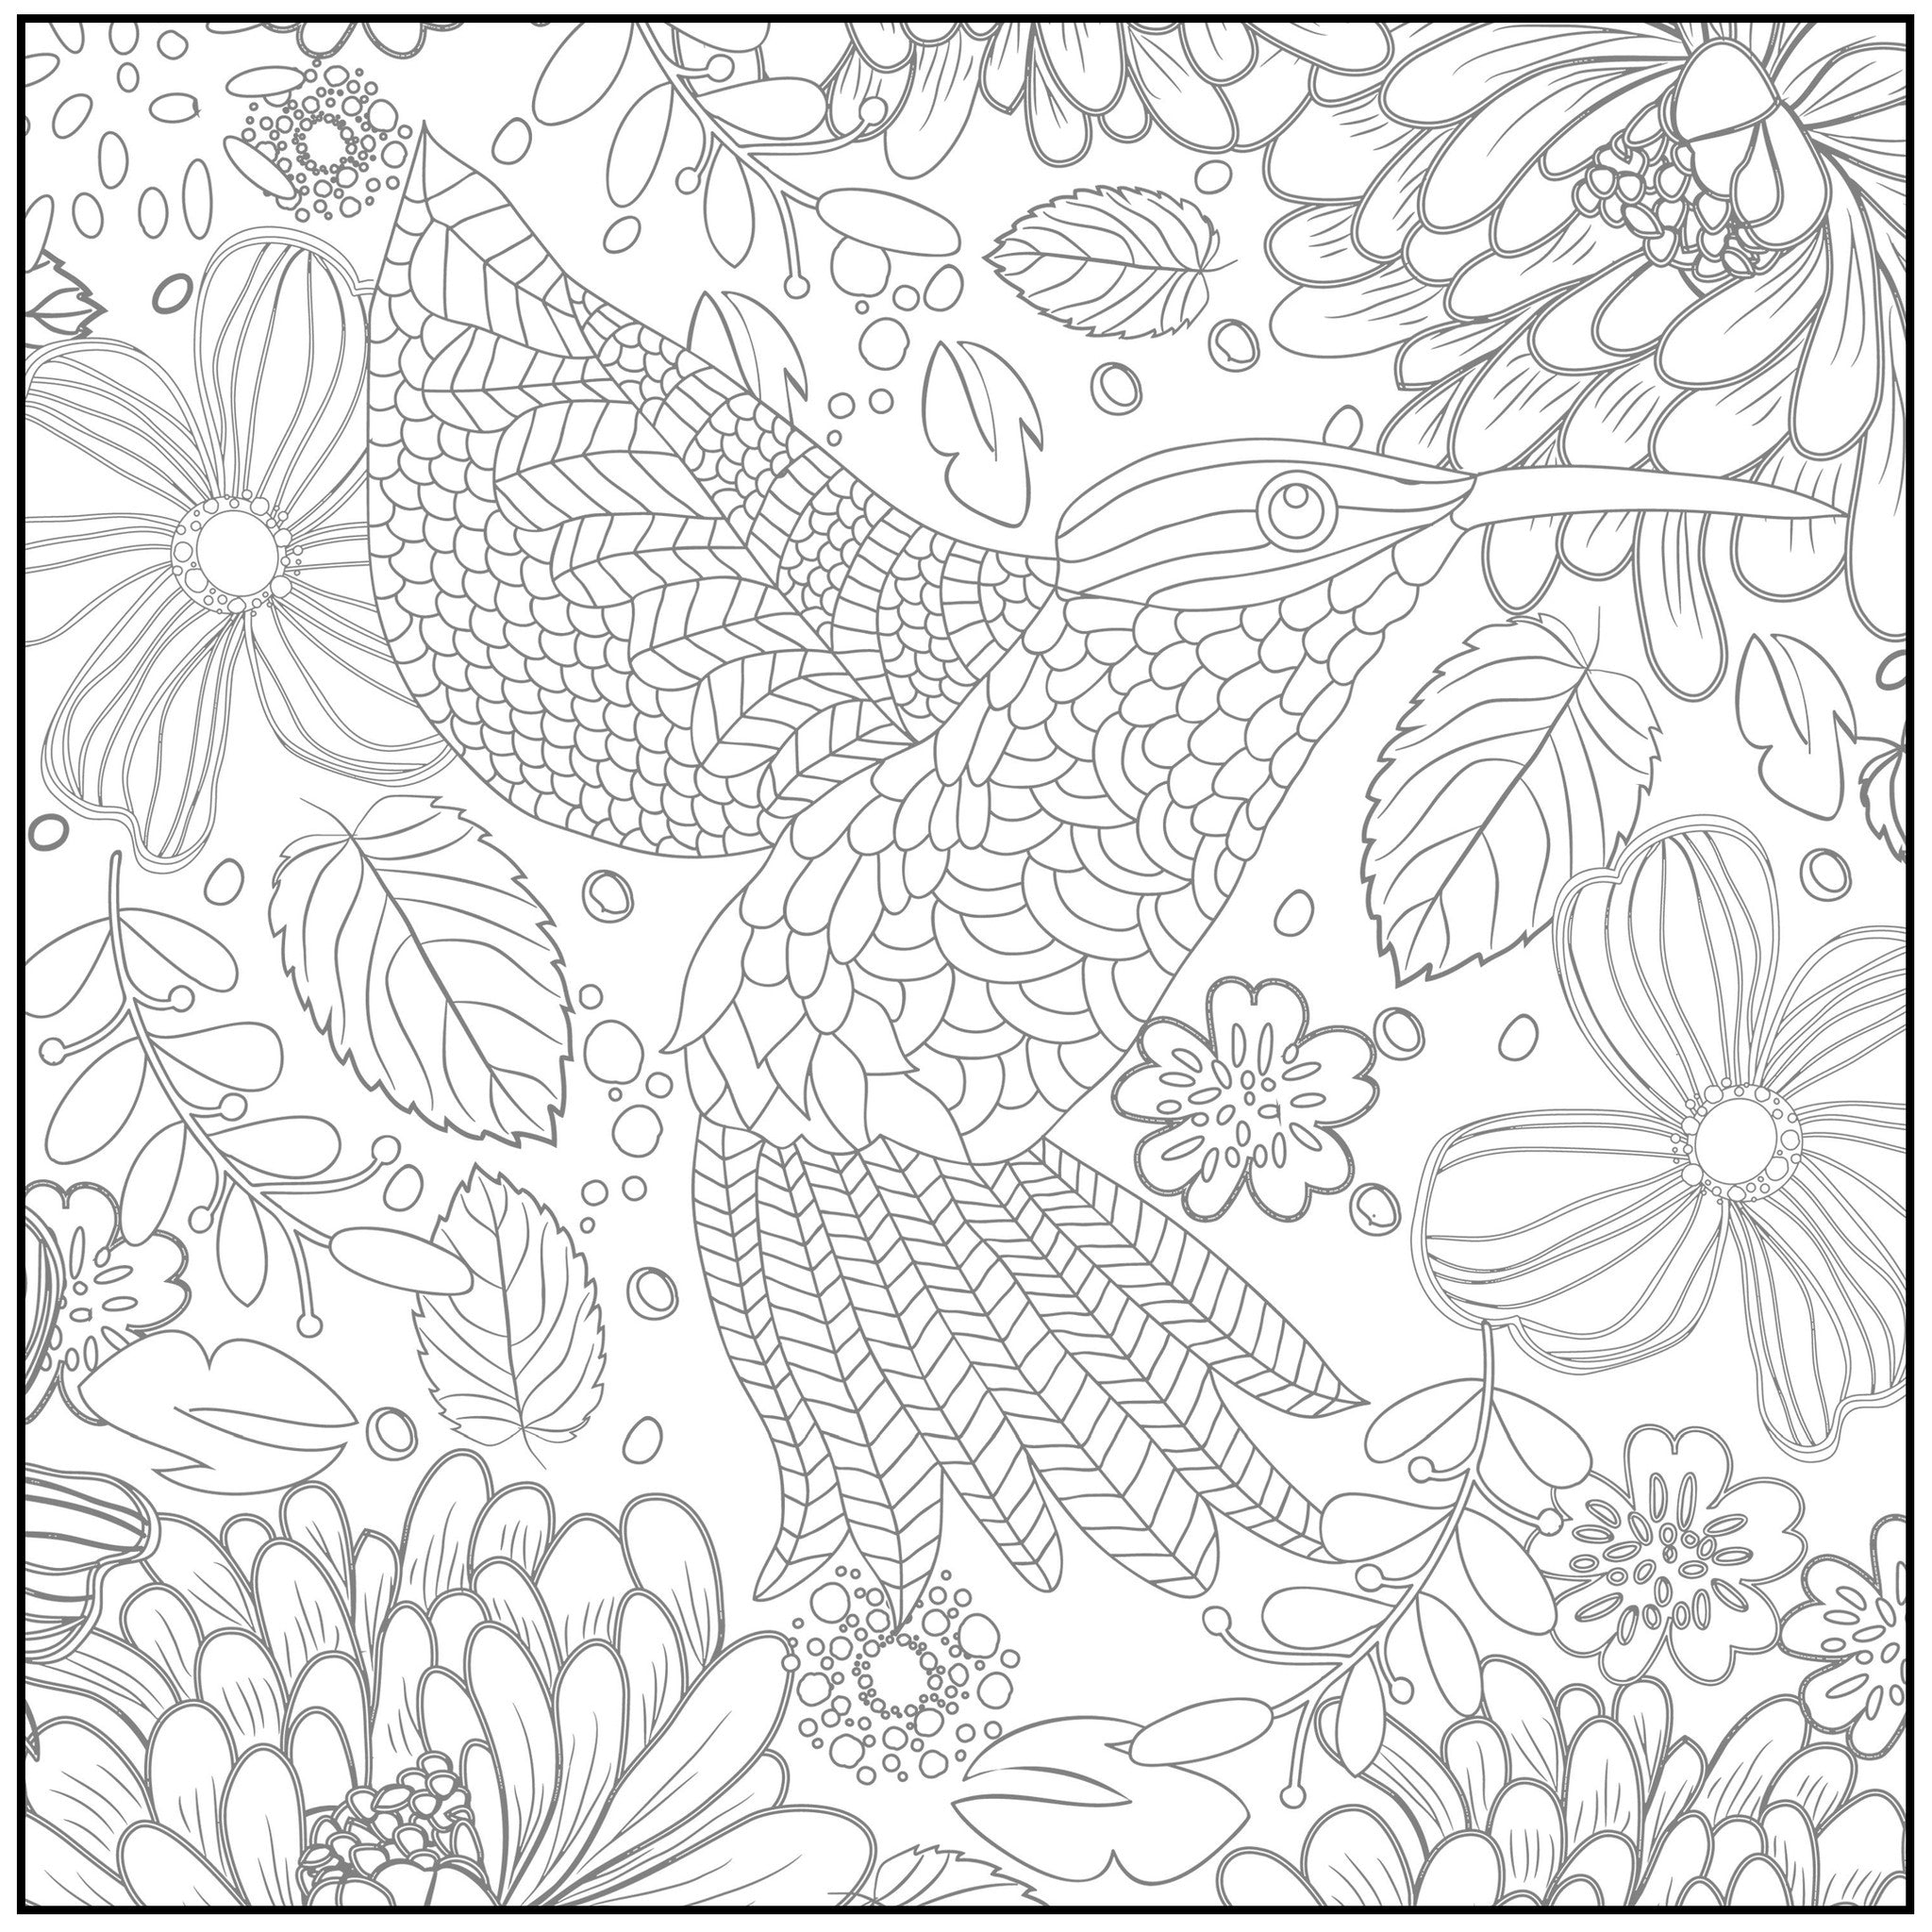 Wonderful Wallpaper Music Spring - Color_With_Music_Spring_Serenade_Adult_Coloring_Book_Blank_Page  Gallery_818333.jpg?v\u003d1472153013